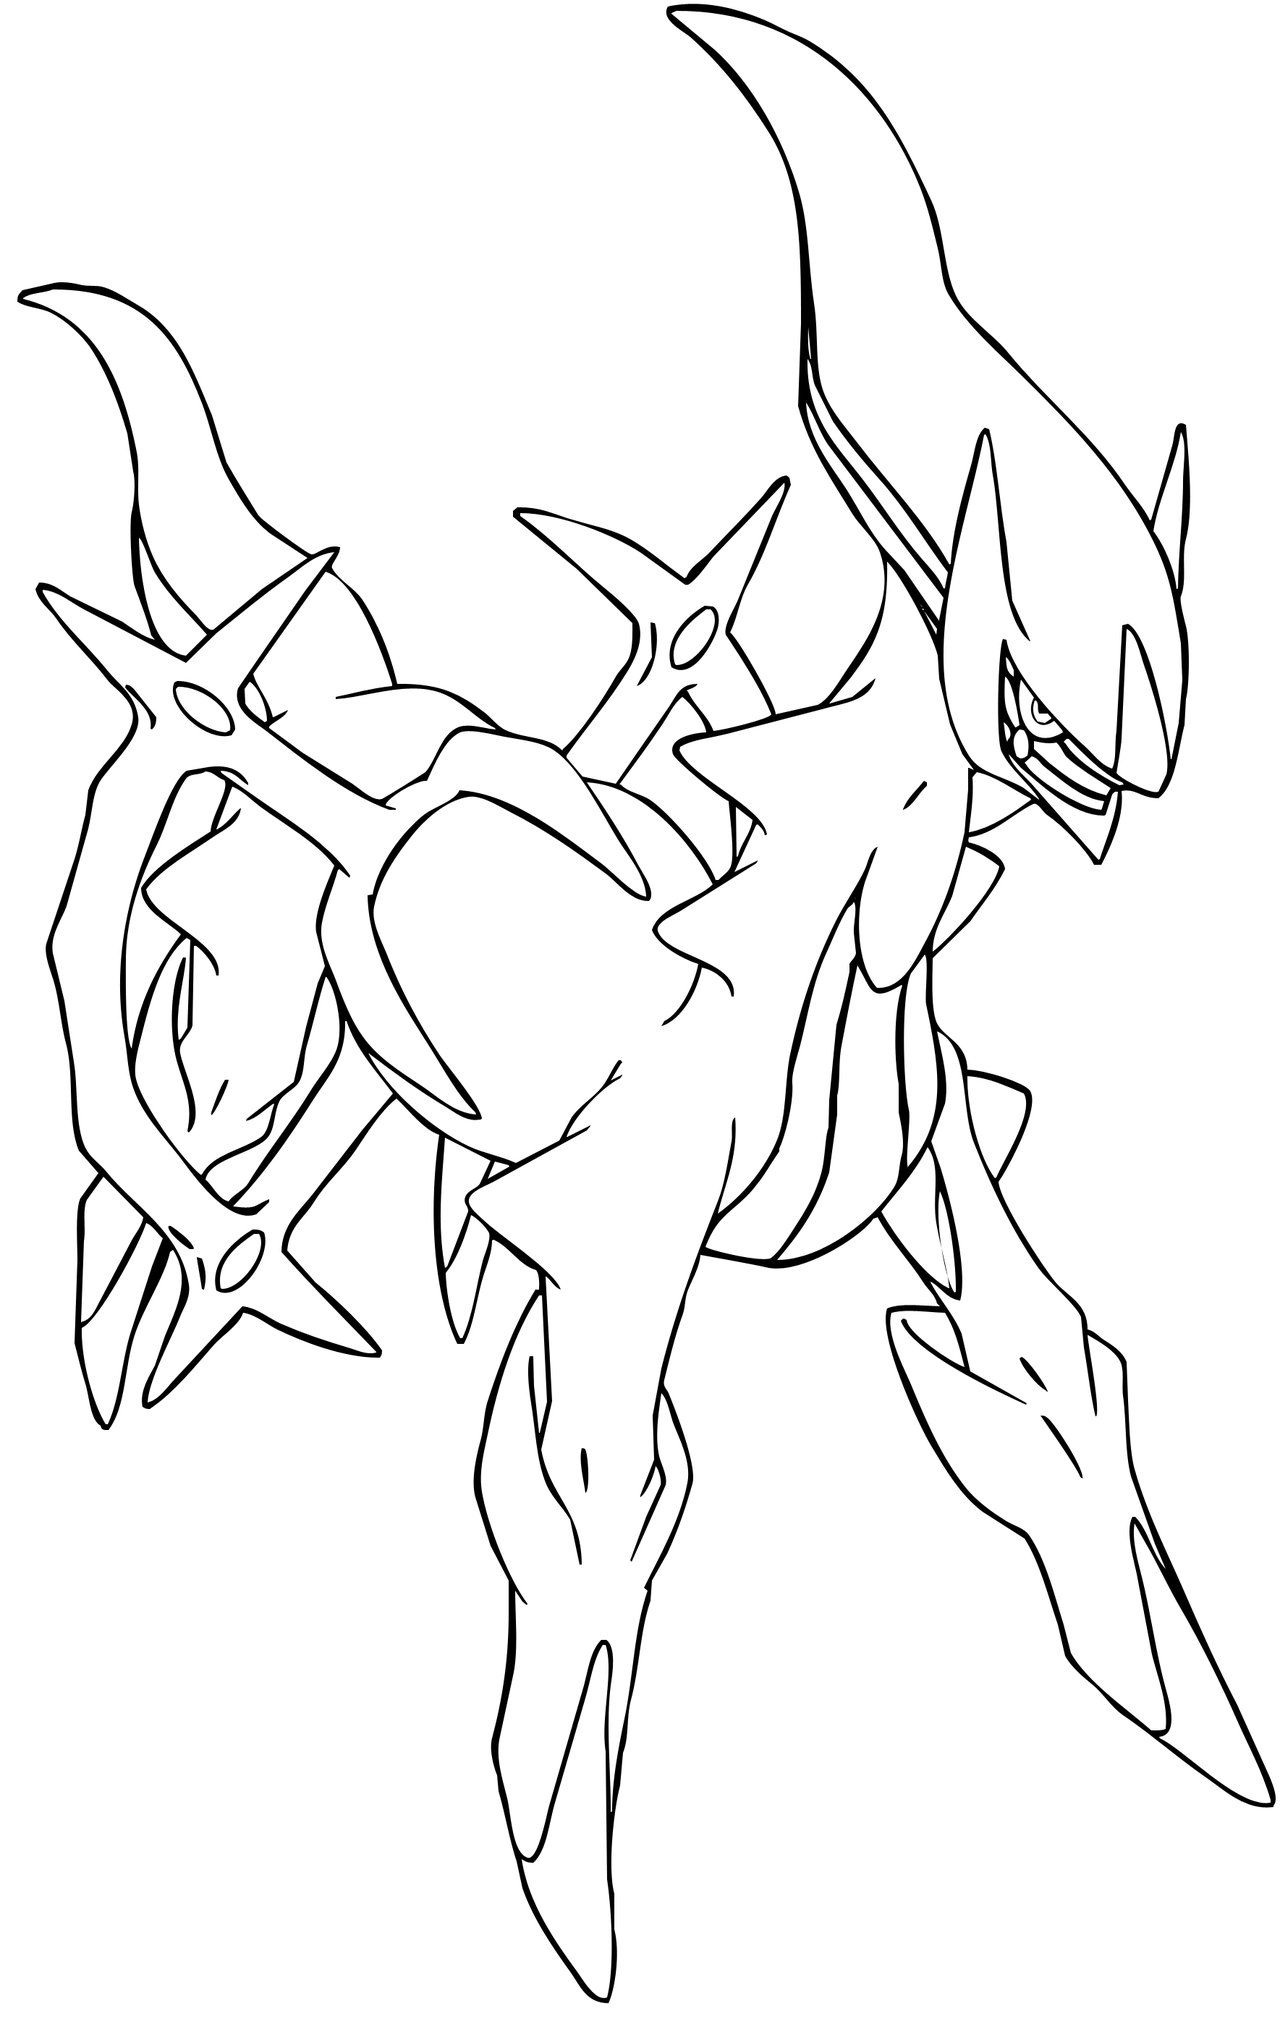 Arceus Lineart 2 By Elsdrake On Deviantart Pokemon Coloring